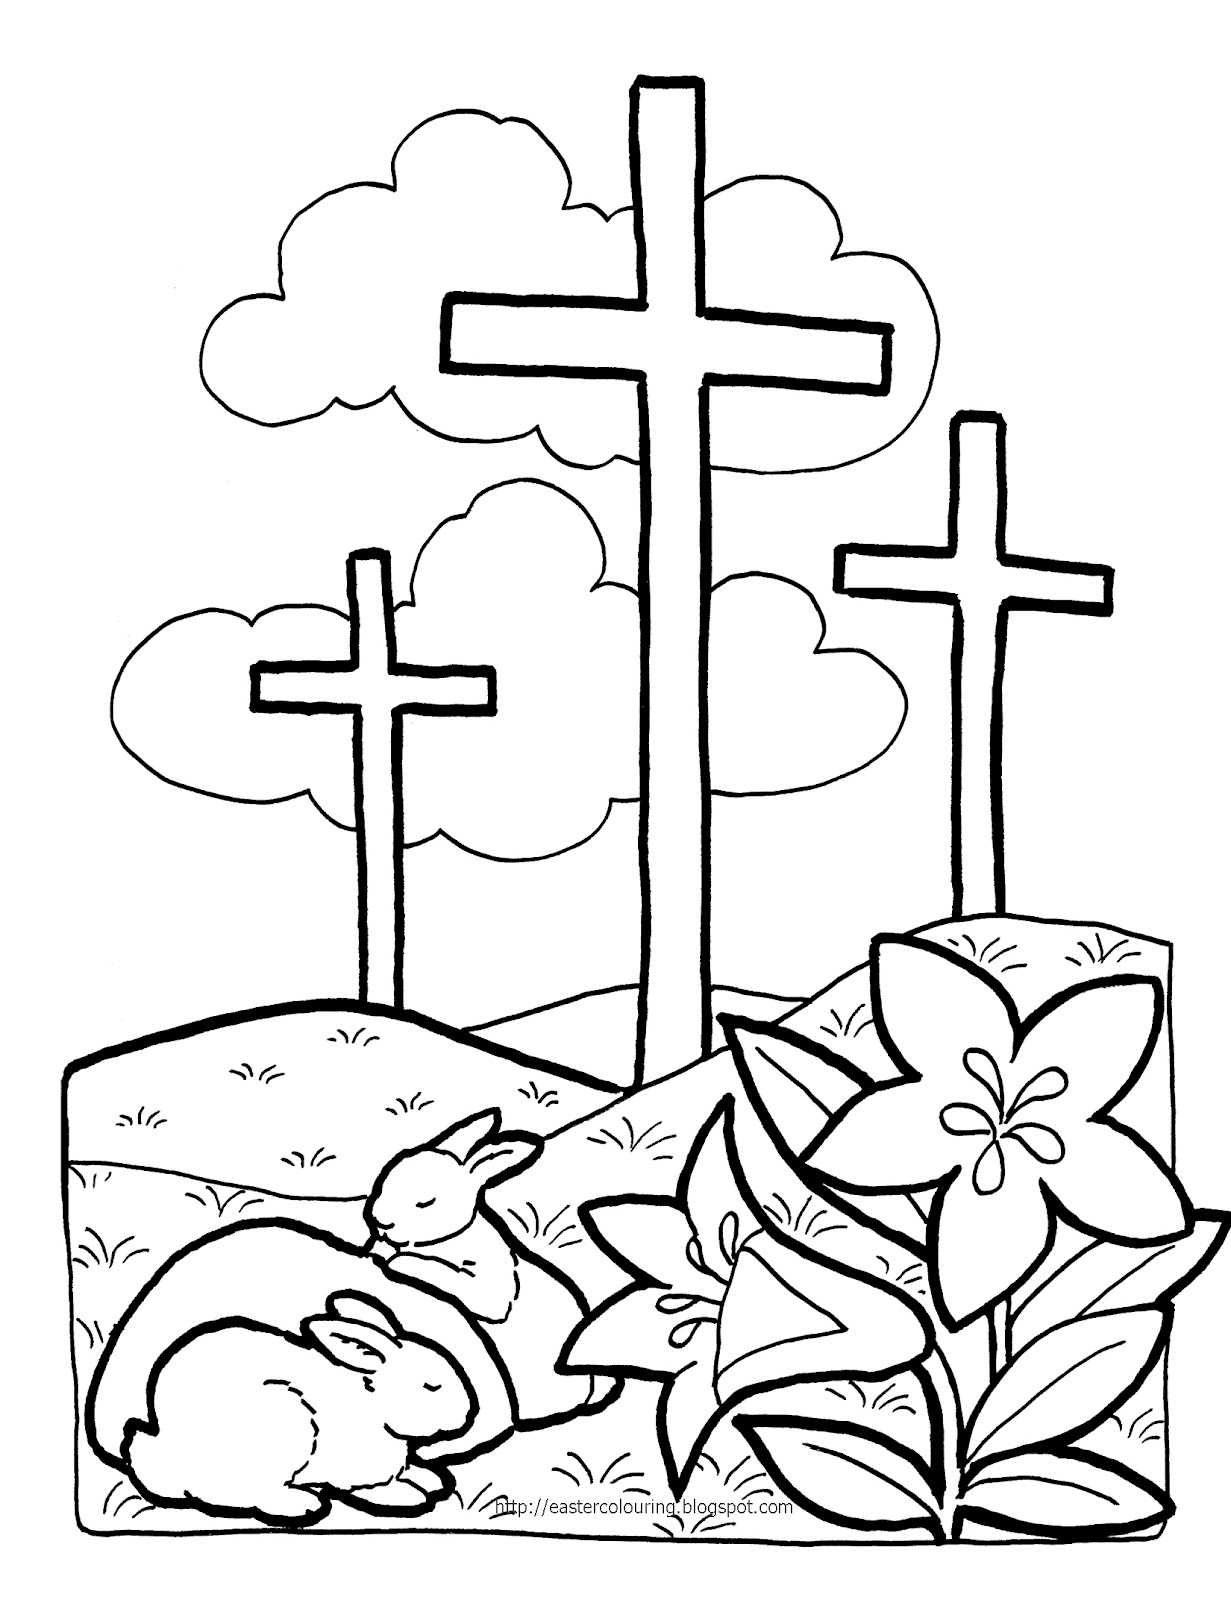 Coloring Pages Printable Religious Coloring Pages free printable christian coloring pages for kids best pages